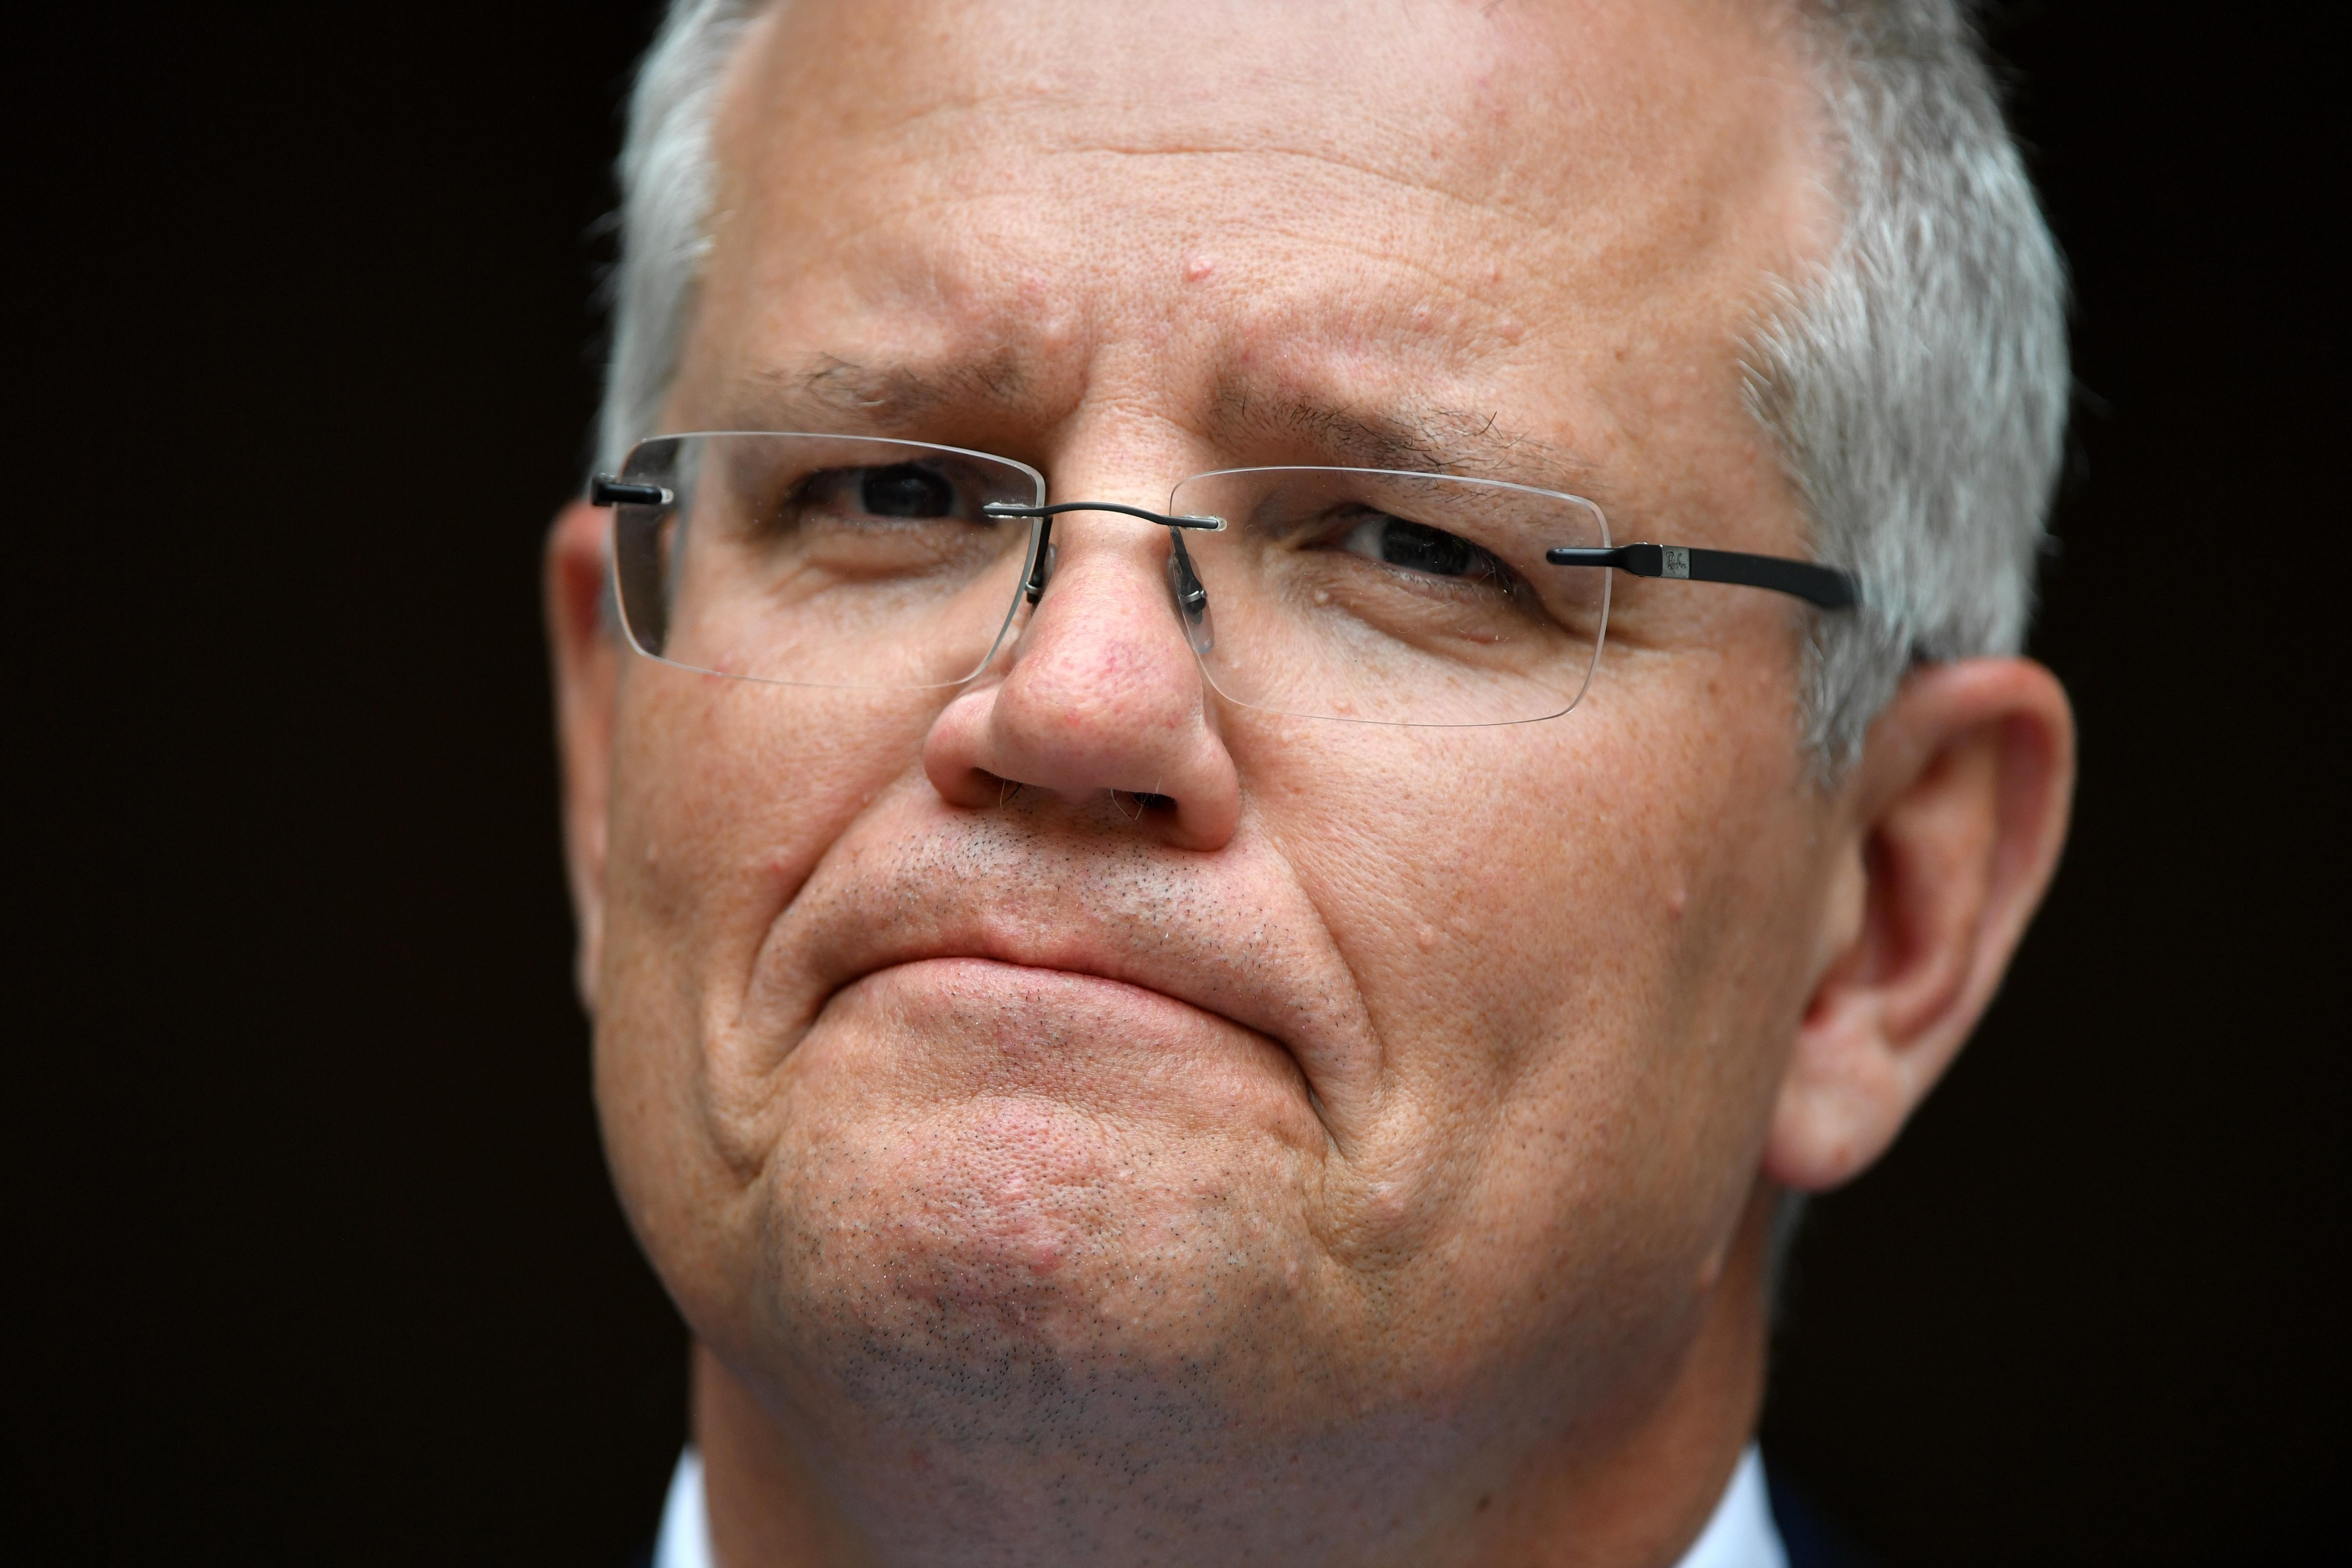 Essential poll: more voters disapprove of Scott Morrison and see him as arrogant